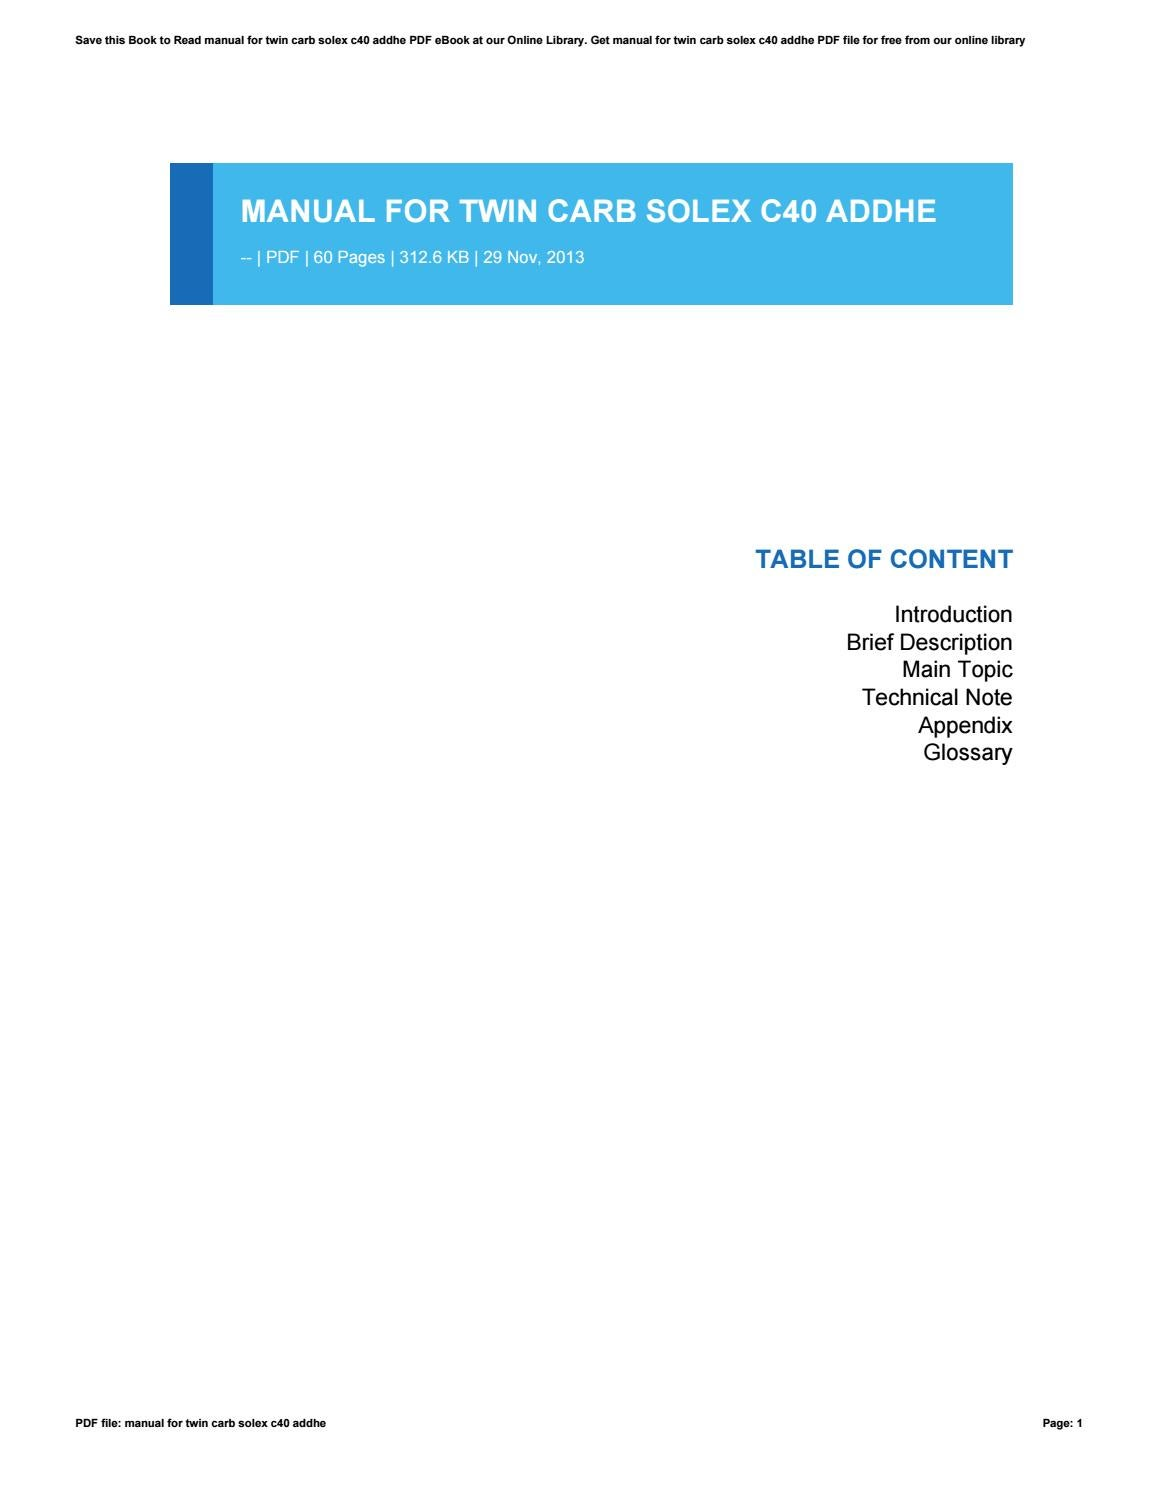 Manual For Twin Carb Solex C40 Addhe